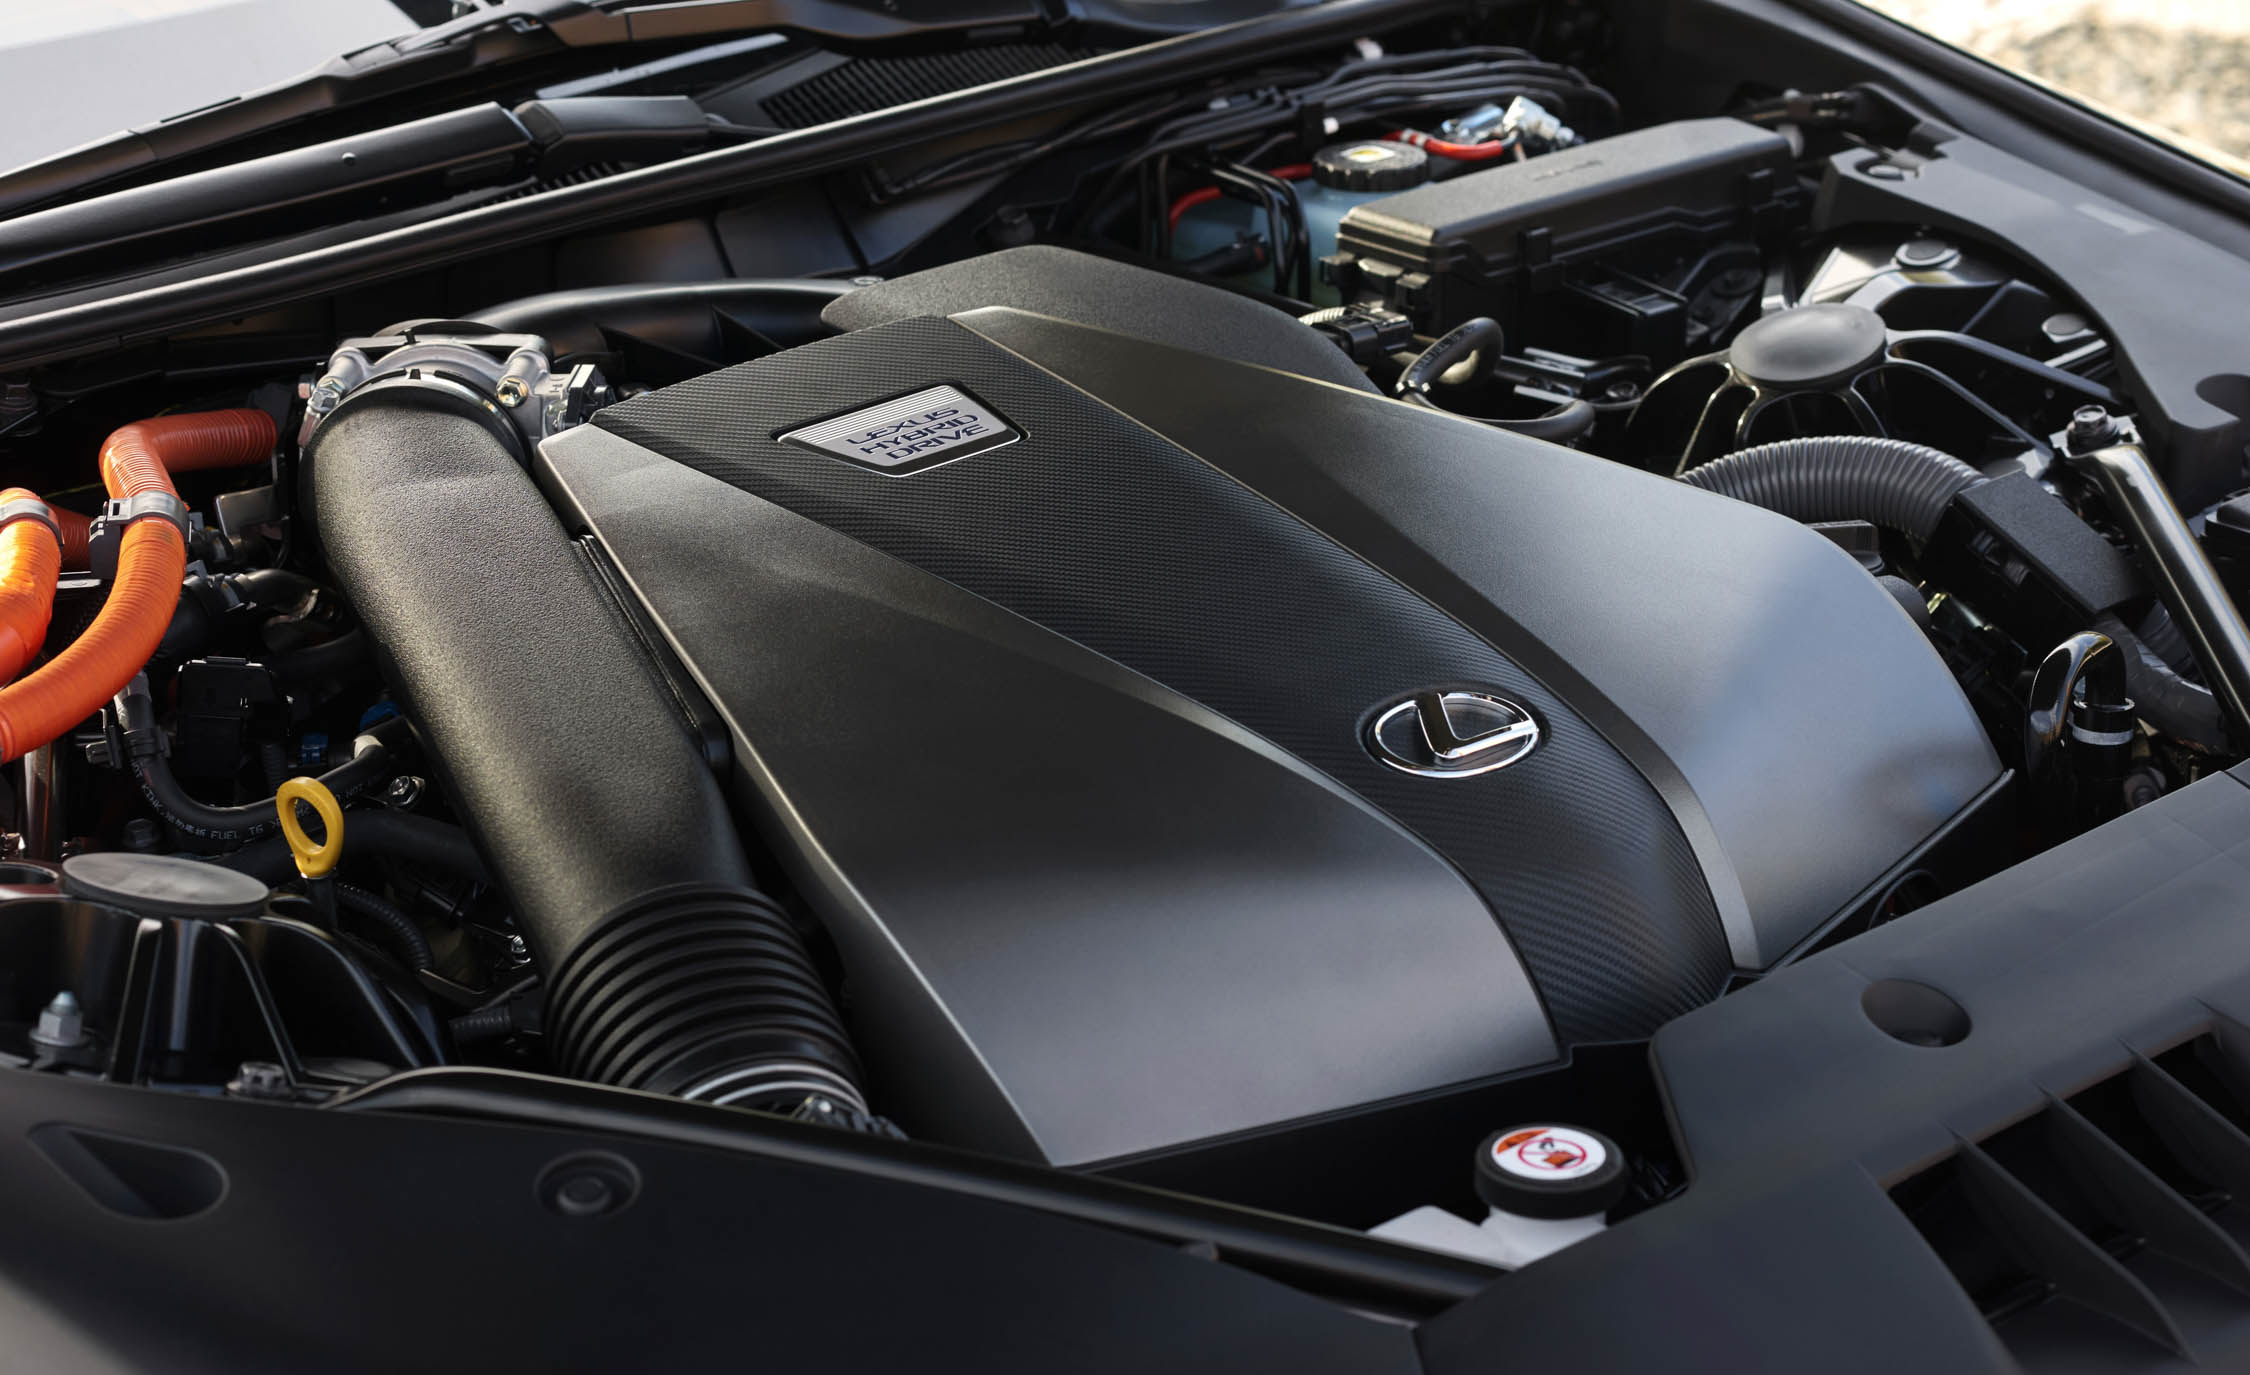 2018 Lexus Lc 500h View Engine (Photo 63 of 84)